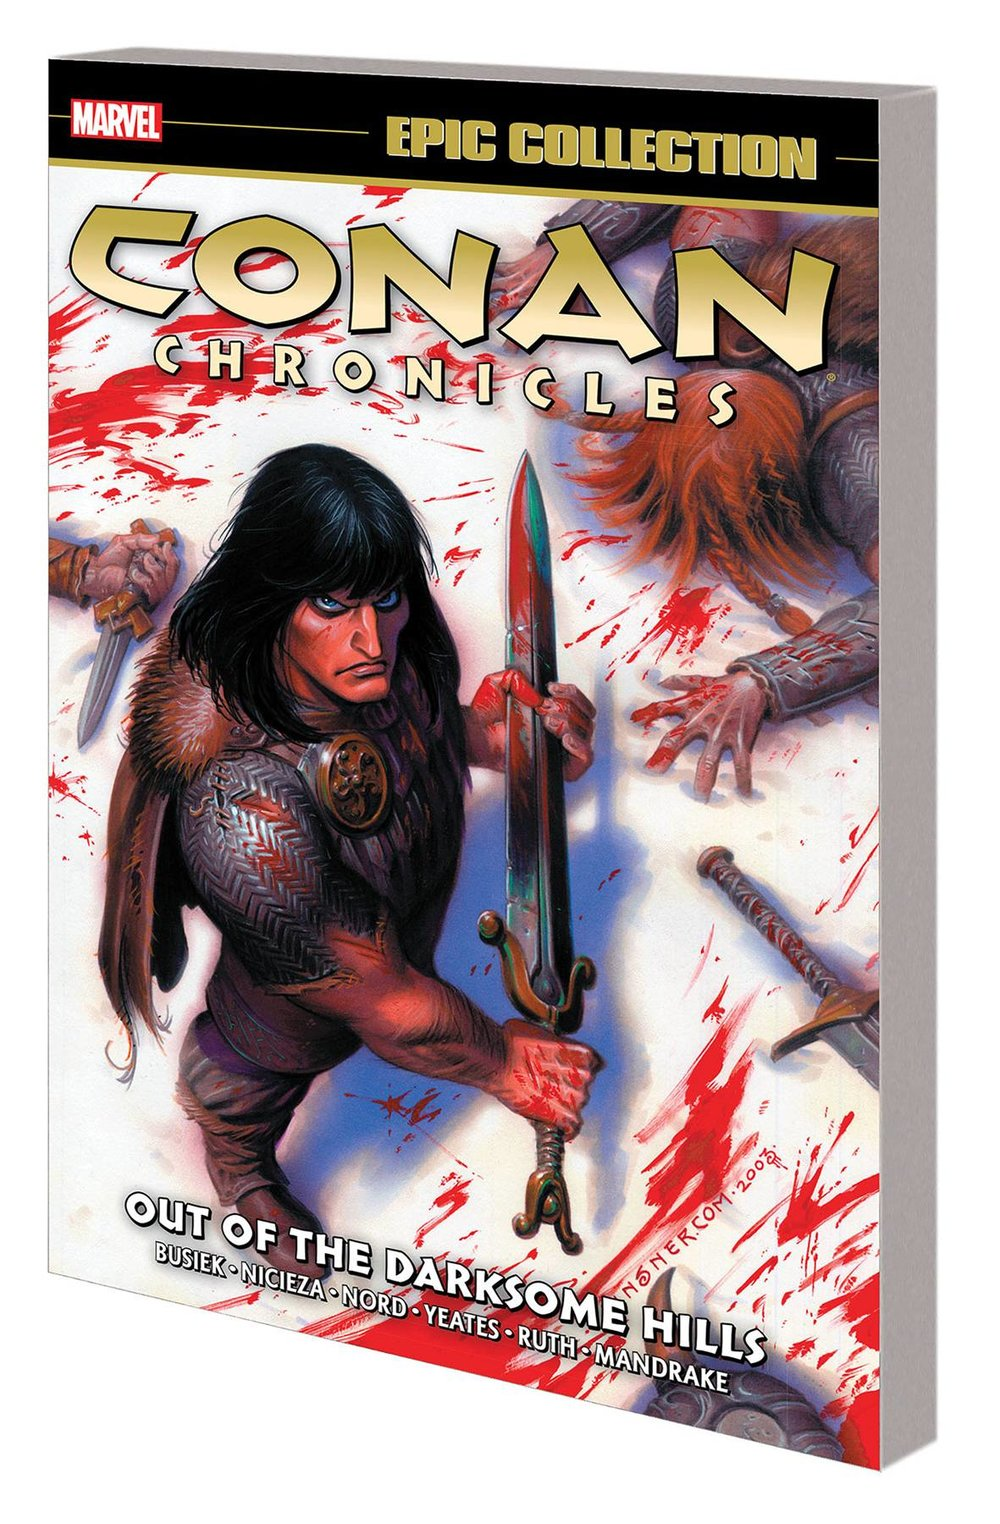 CONAN CHRONICLES EPIC COLLECTION TP DARKSOME HILLS.jpg